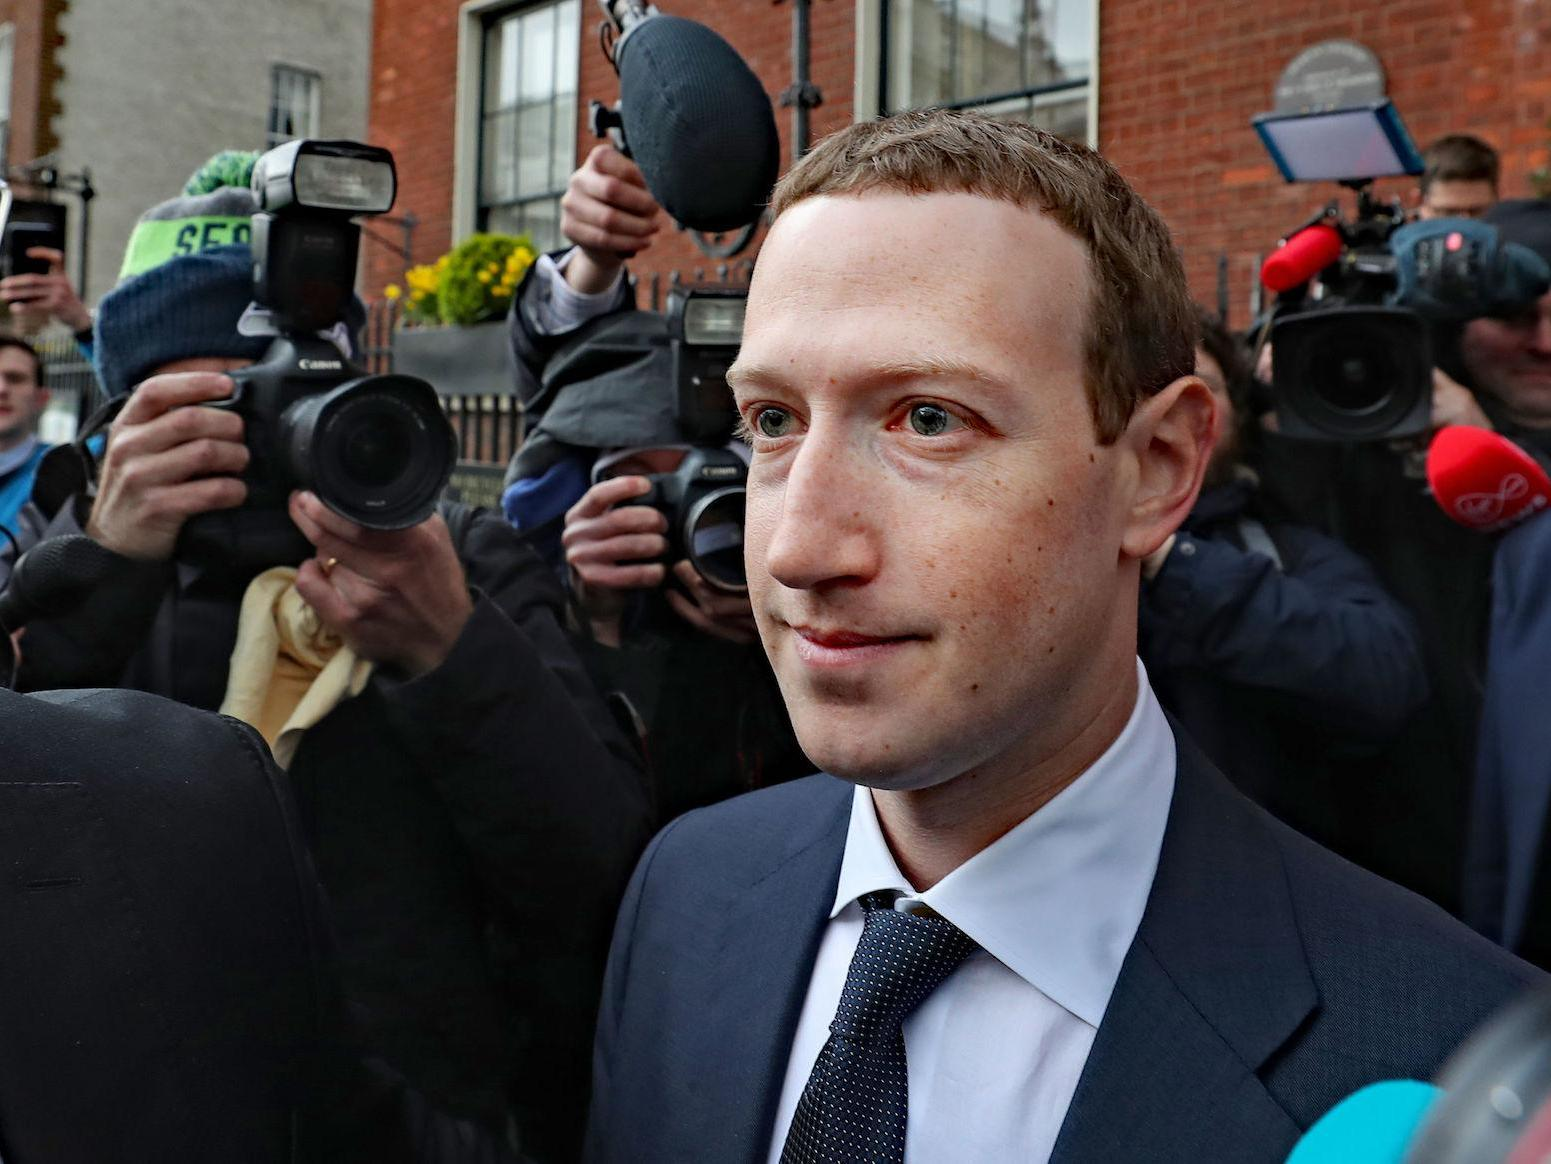 Mark Zuckerberg - latest news, breaking stories and comment